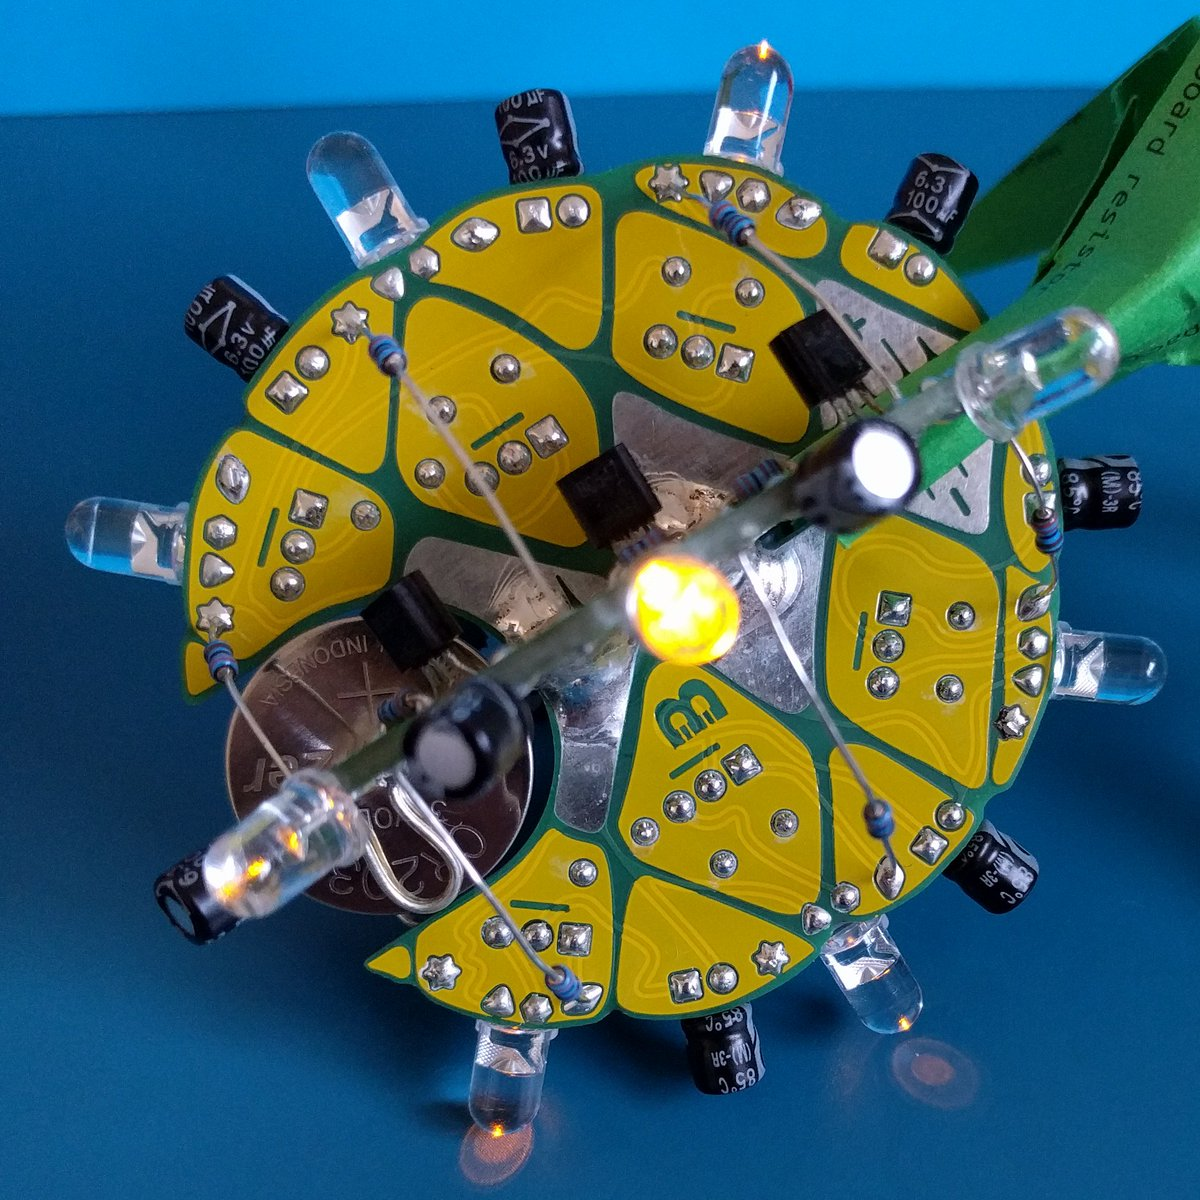 Assembled the Ananas from @boldport's #BoldportClub